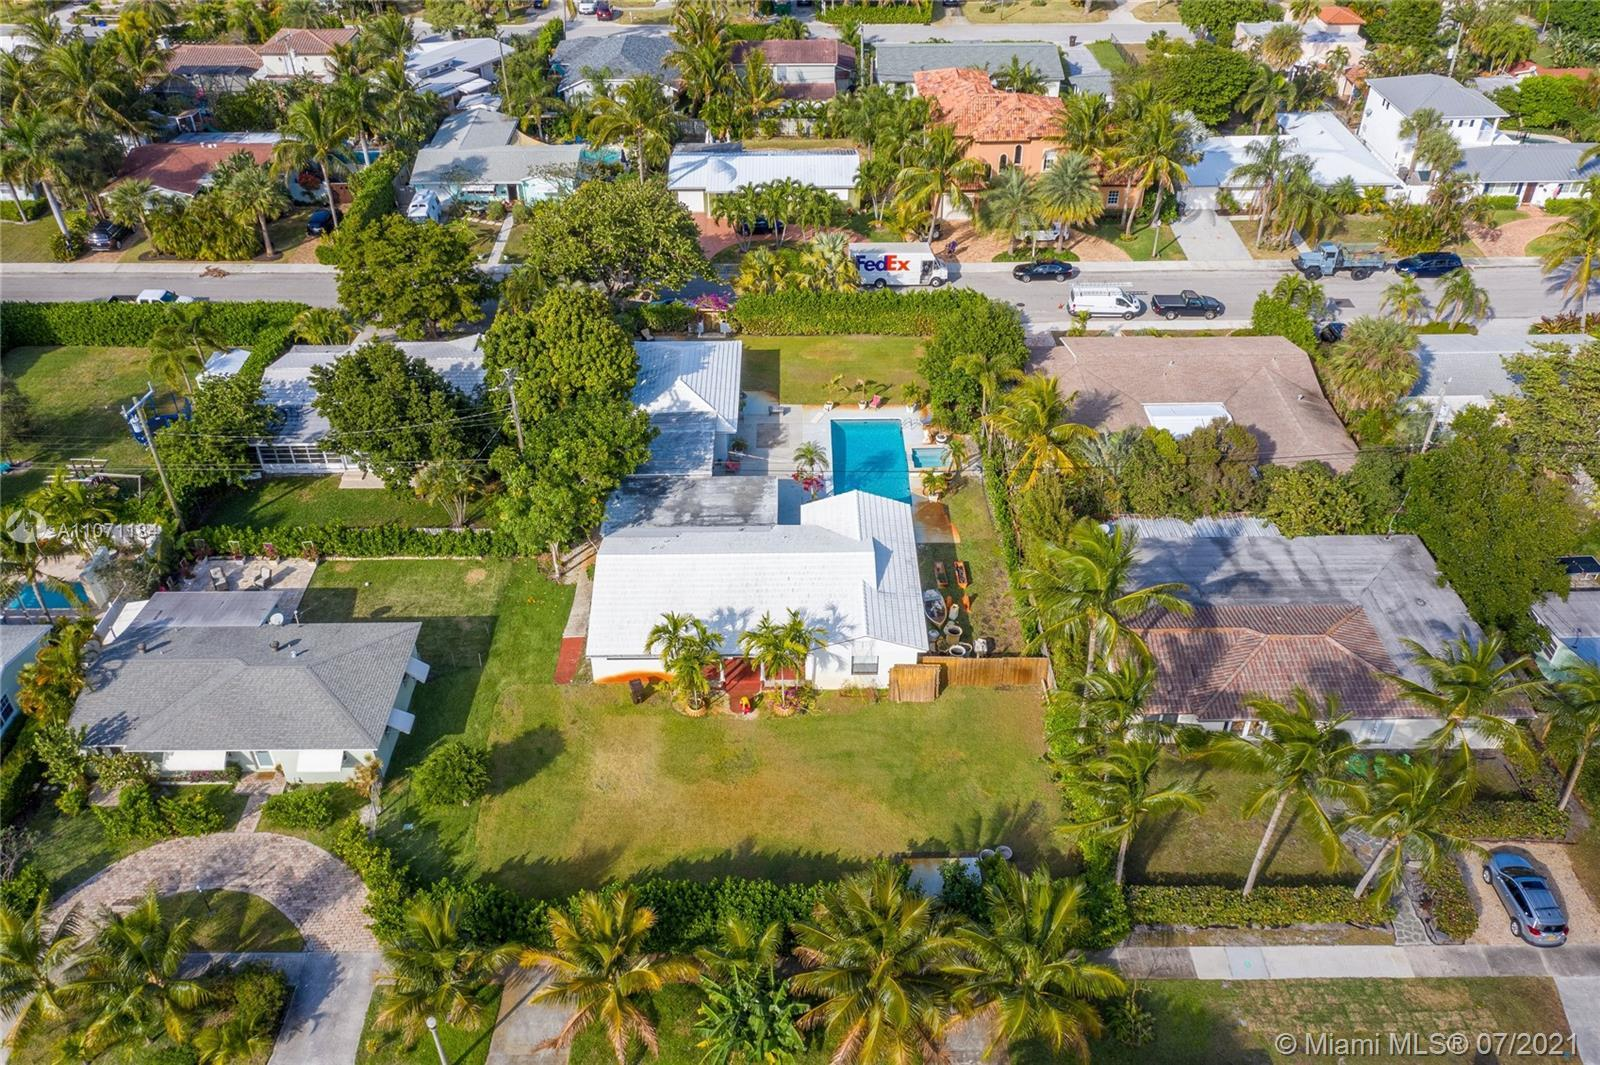 Amazing opportunity to own a home on a double lot over a 1/4 acre in one of the most desirable areas